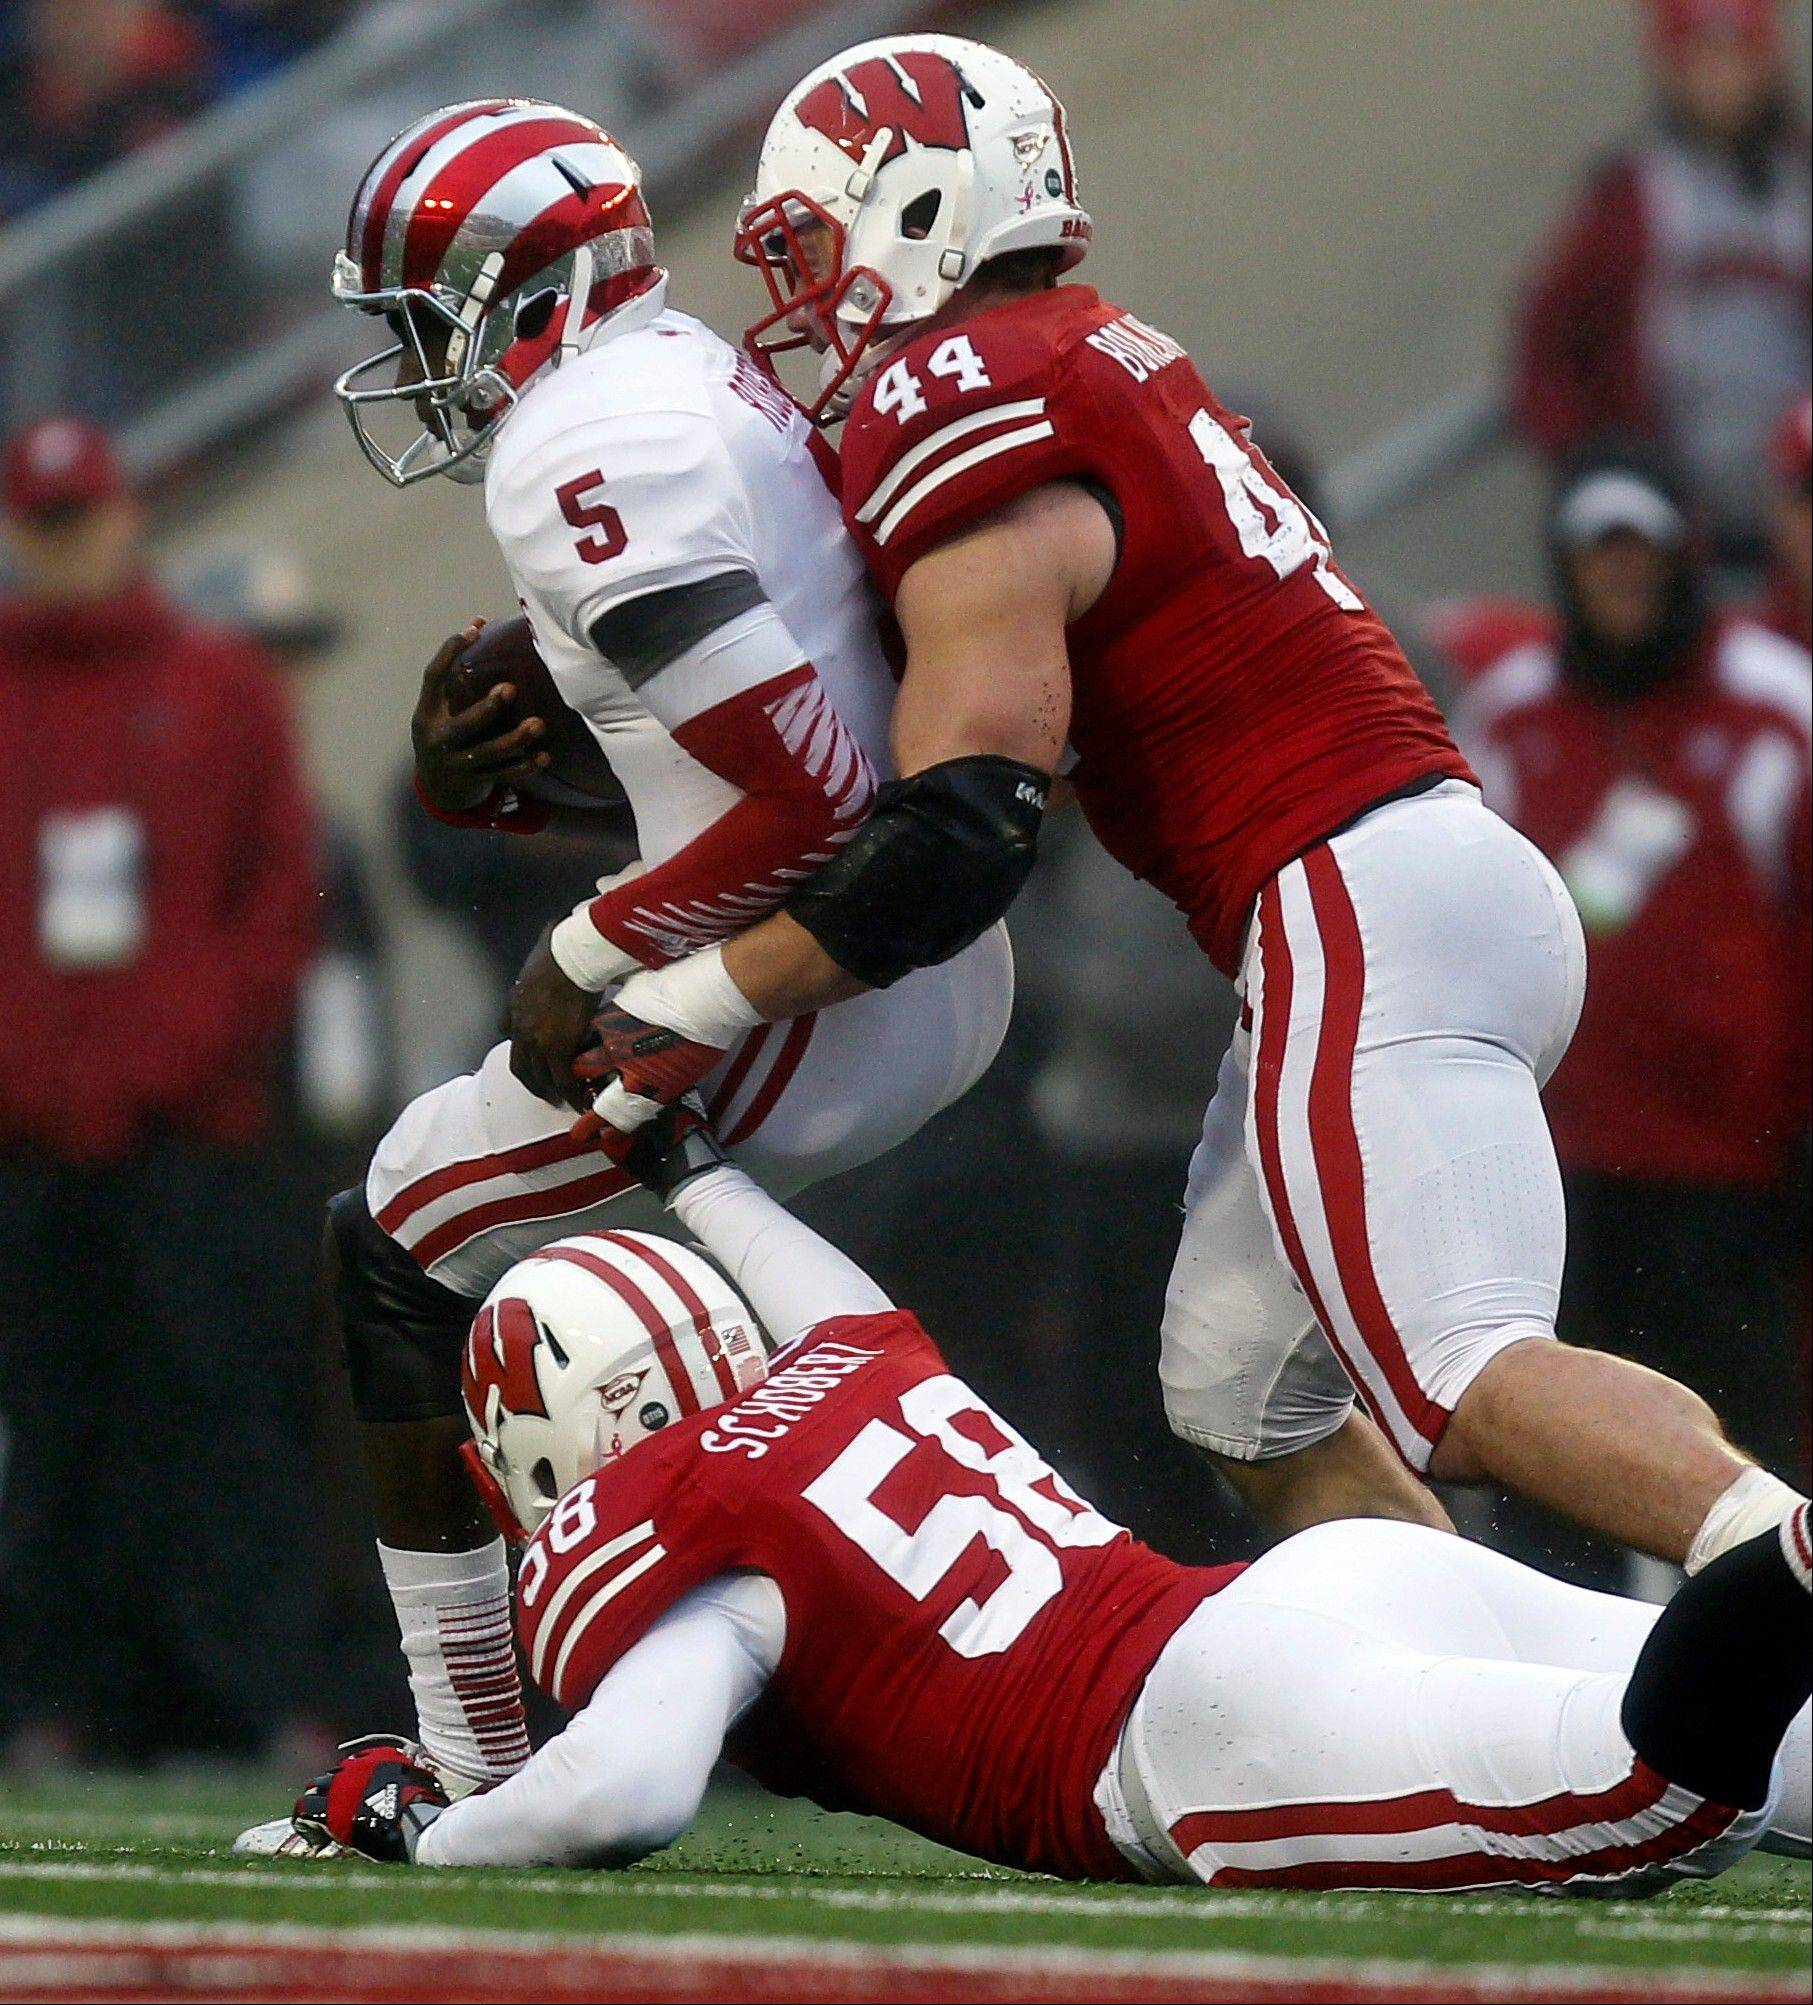 Indiana quarterback Tre Roberson is sacked by Wisconsin's Chris Borland (44) and Joe Schobert during the first half of Saturday's game in Madison, Wis. The Badgers routed the Hoosiers 51-3.